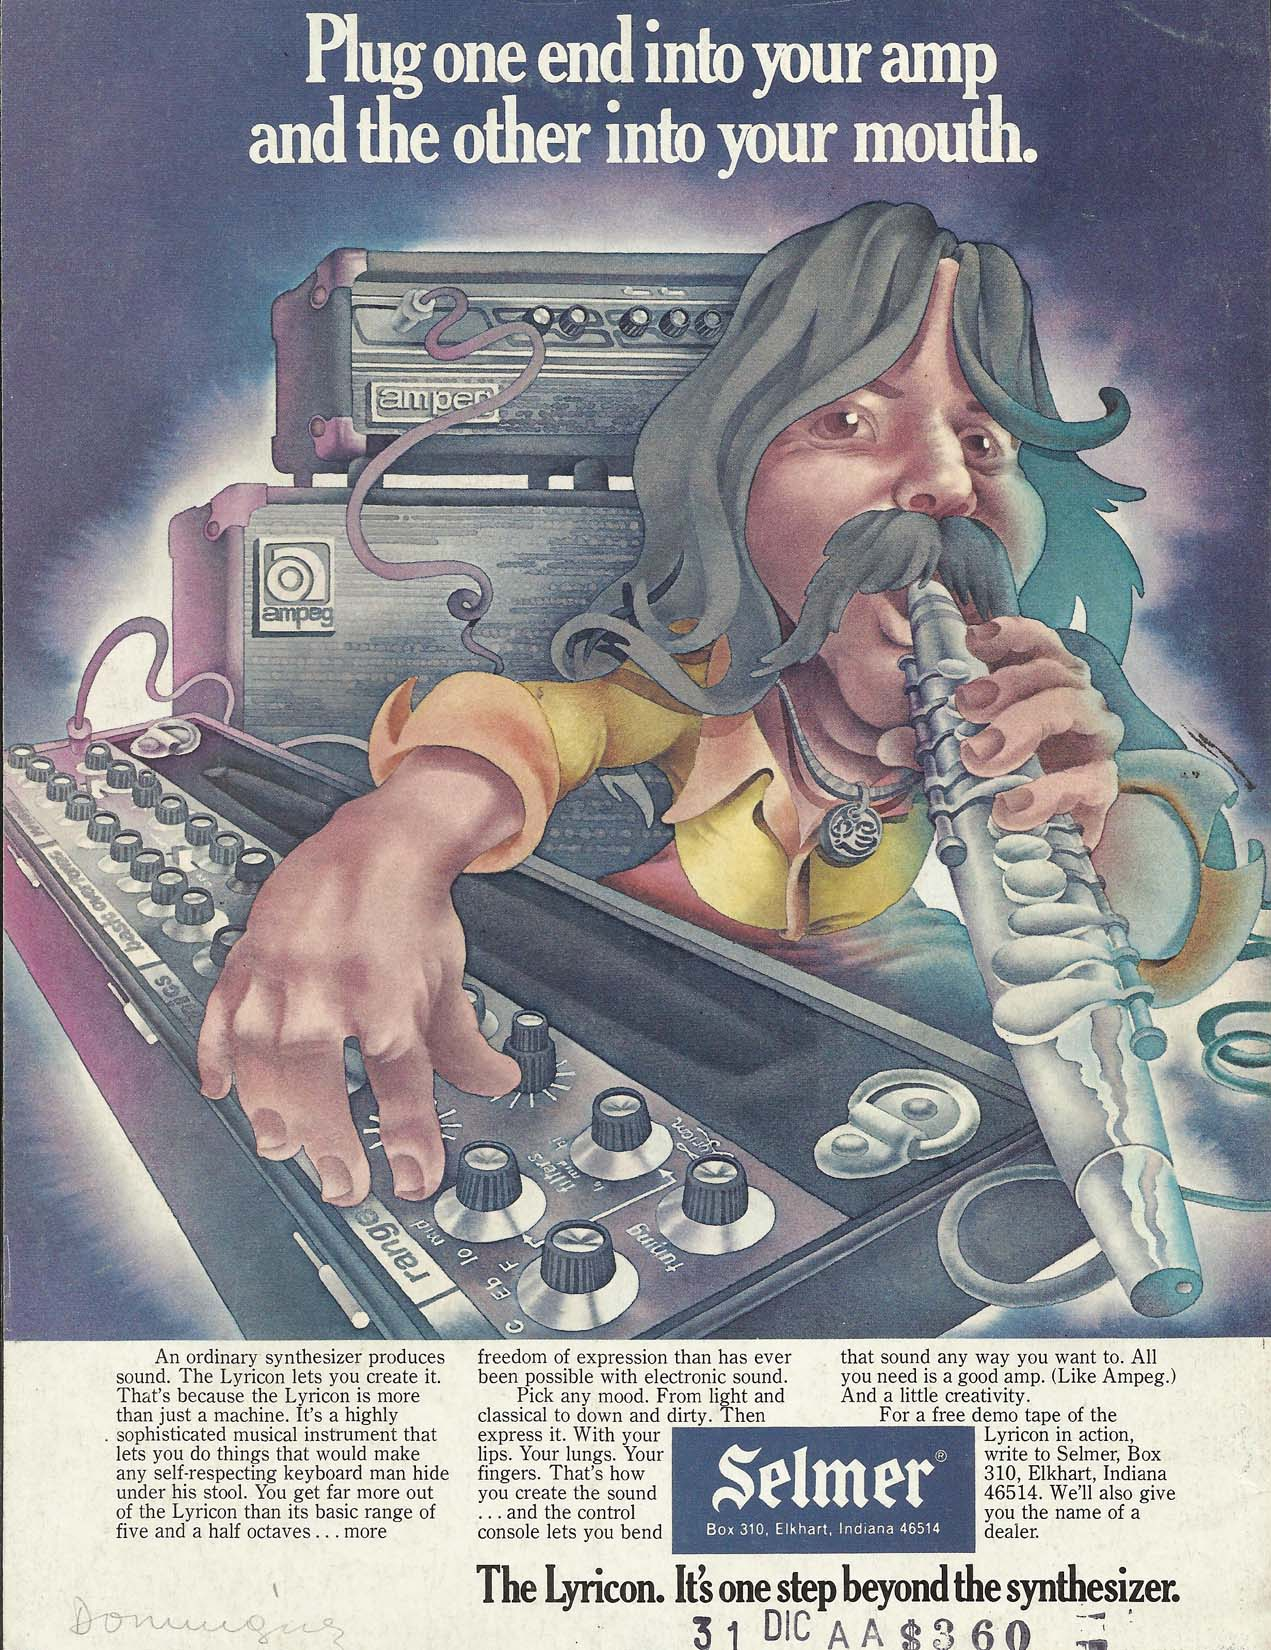 Lyricon II, wind controller, wind synth, wind synthesizer, vintage ad, 1975, Selmer